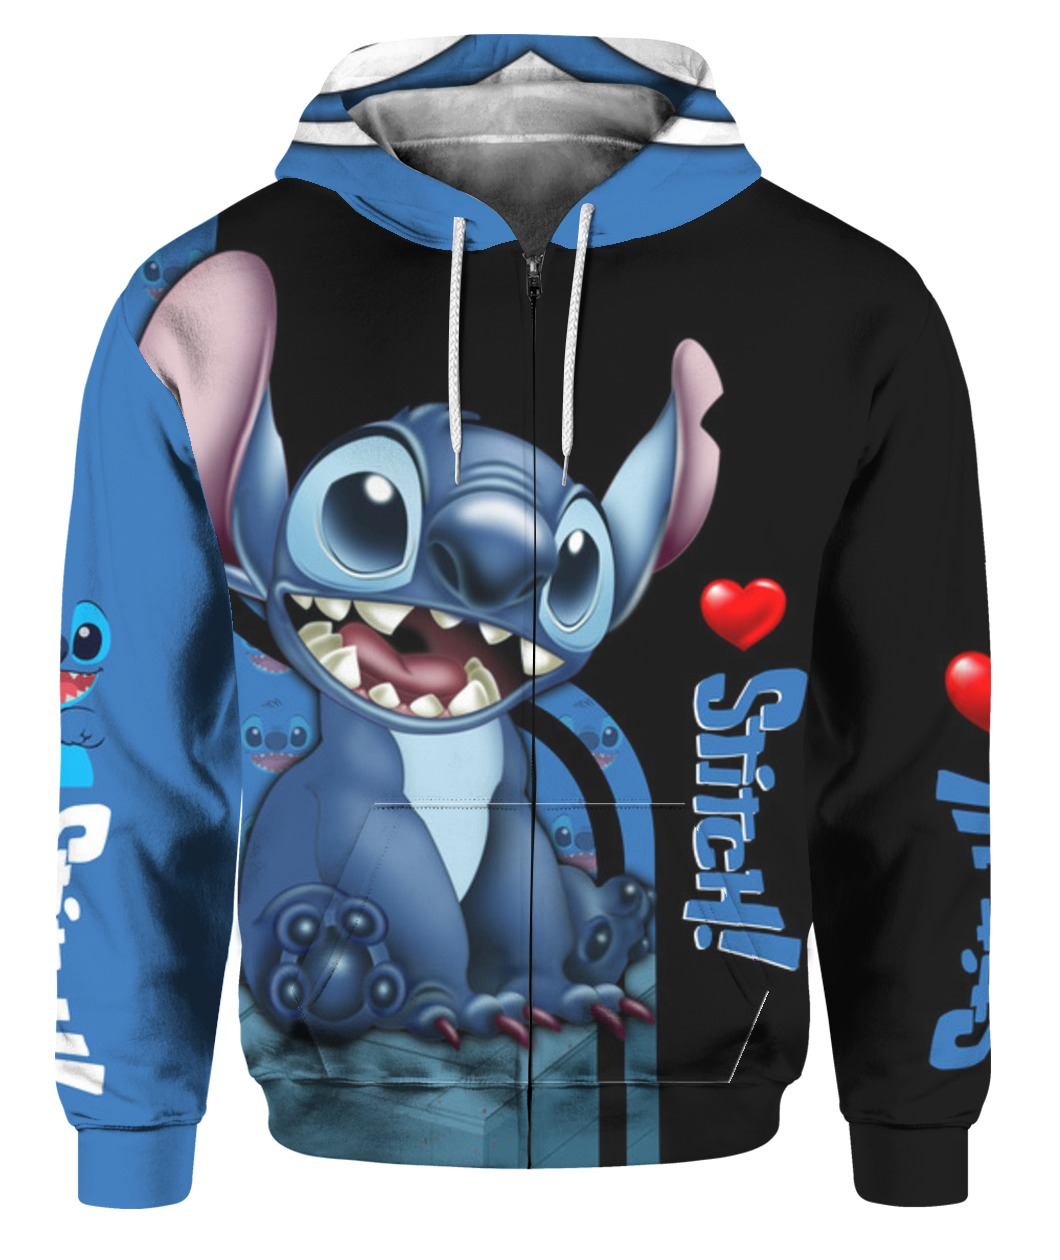 Stitch all over printed zip hoodie